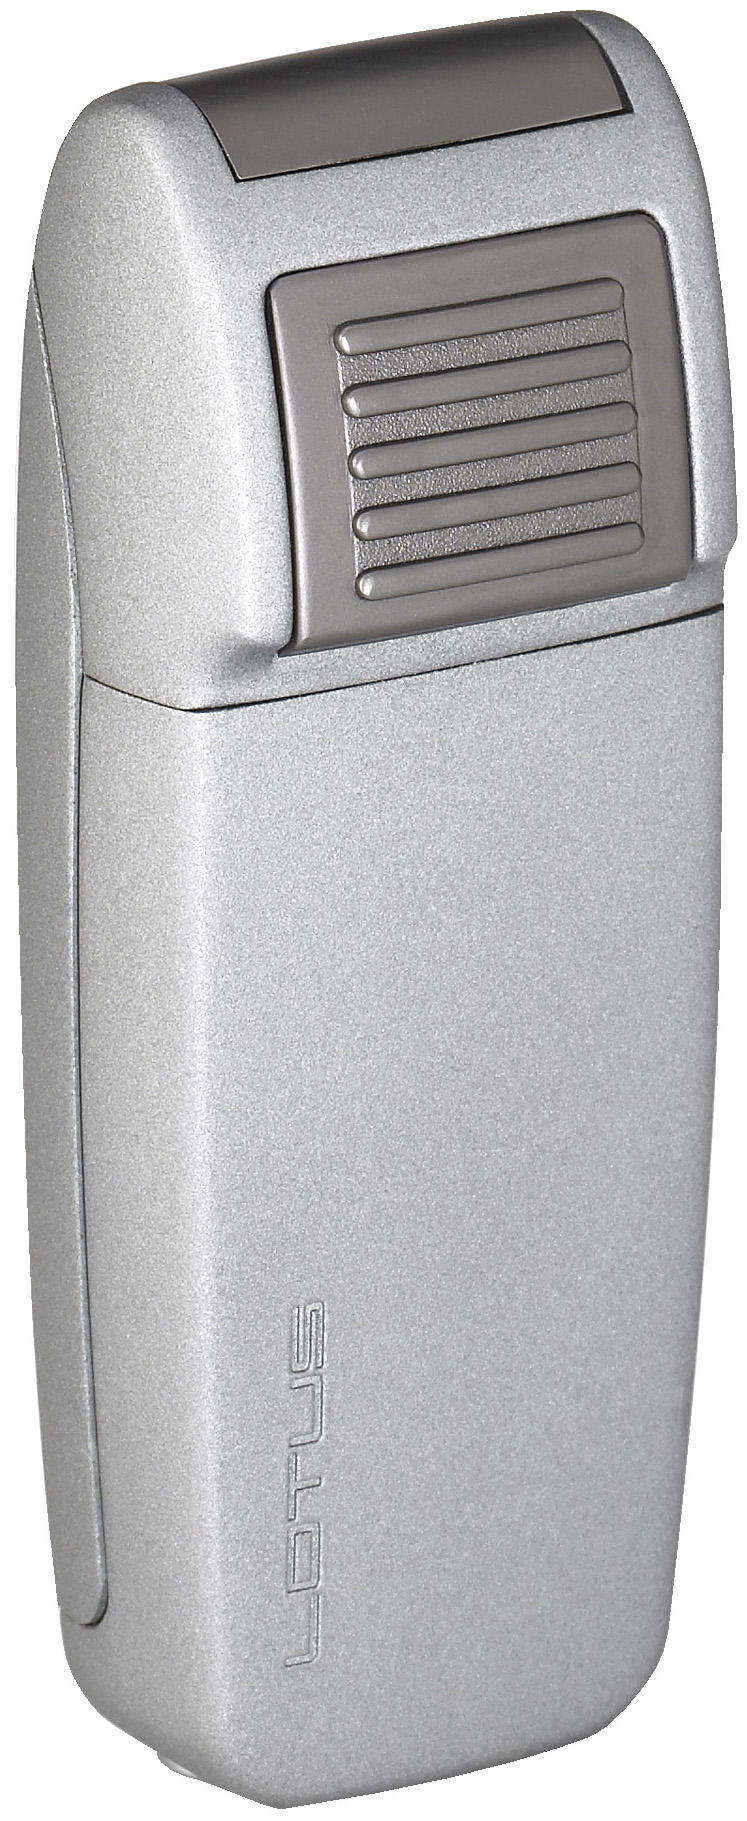 Lotus L34 Retro Double Torch Lighter with Retracable Punch Grey Matte